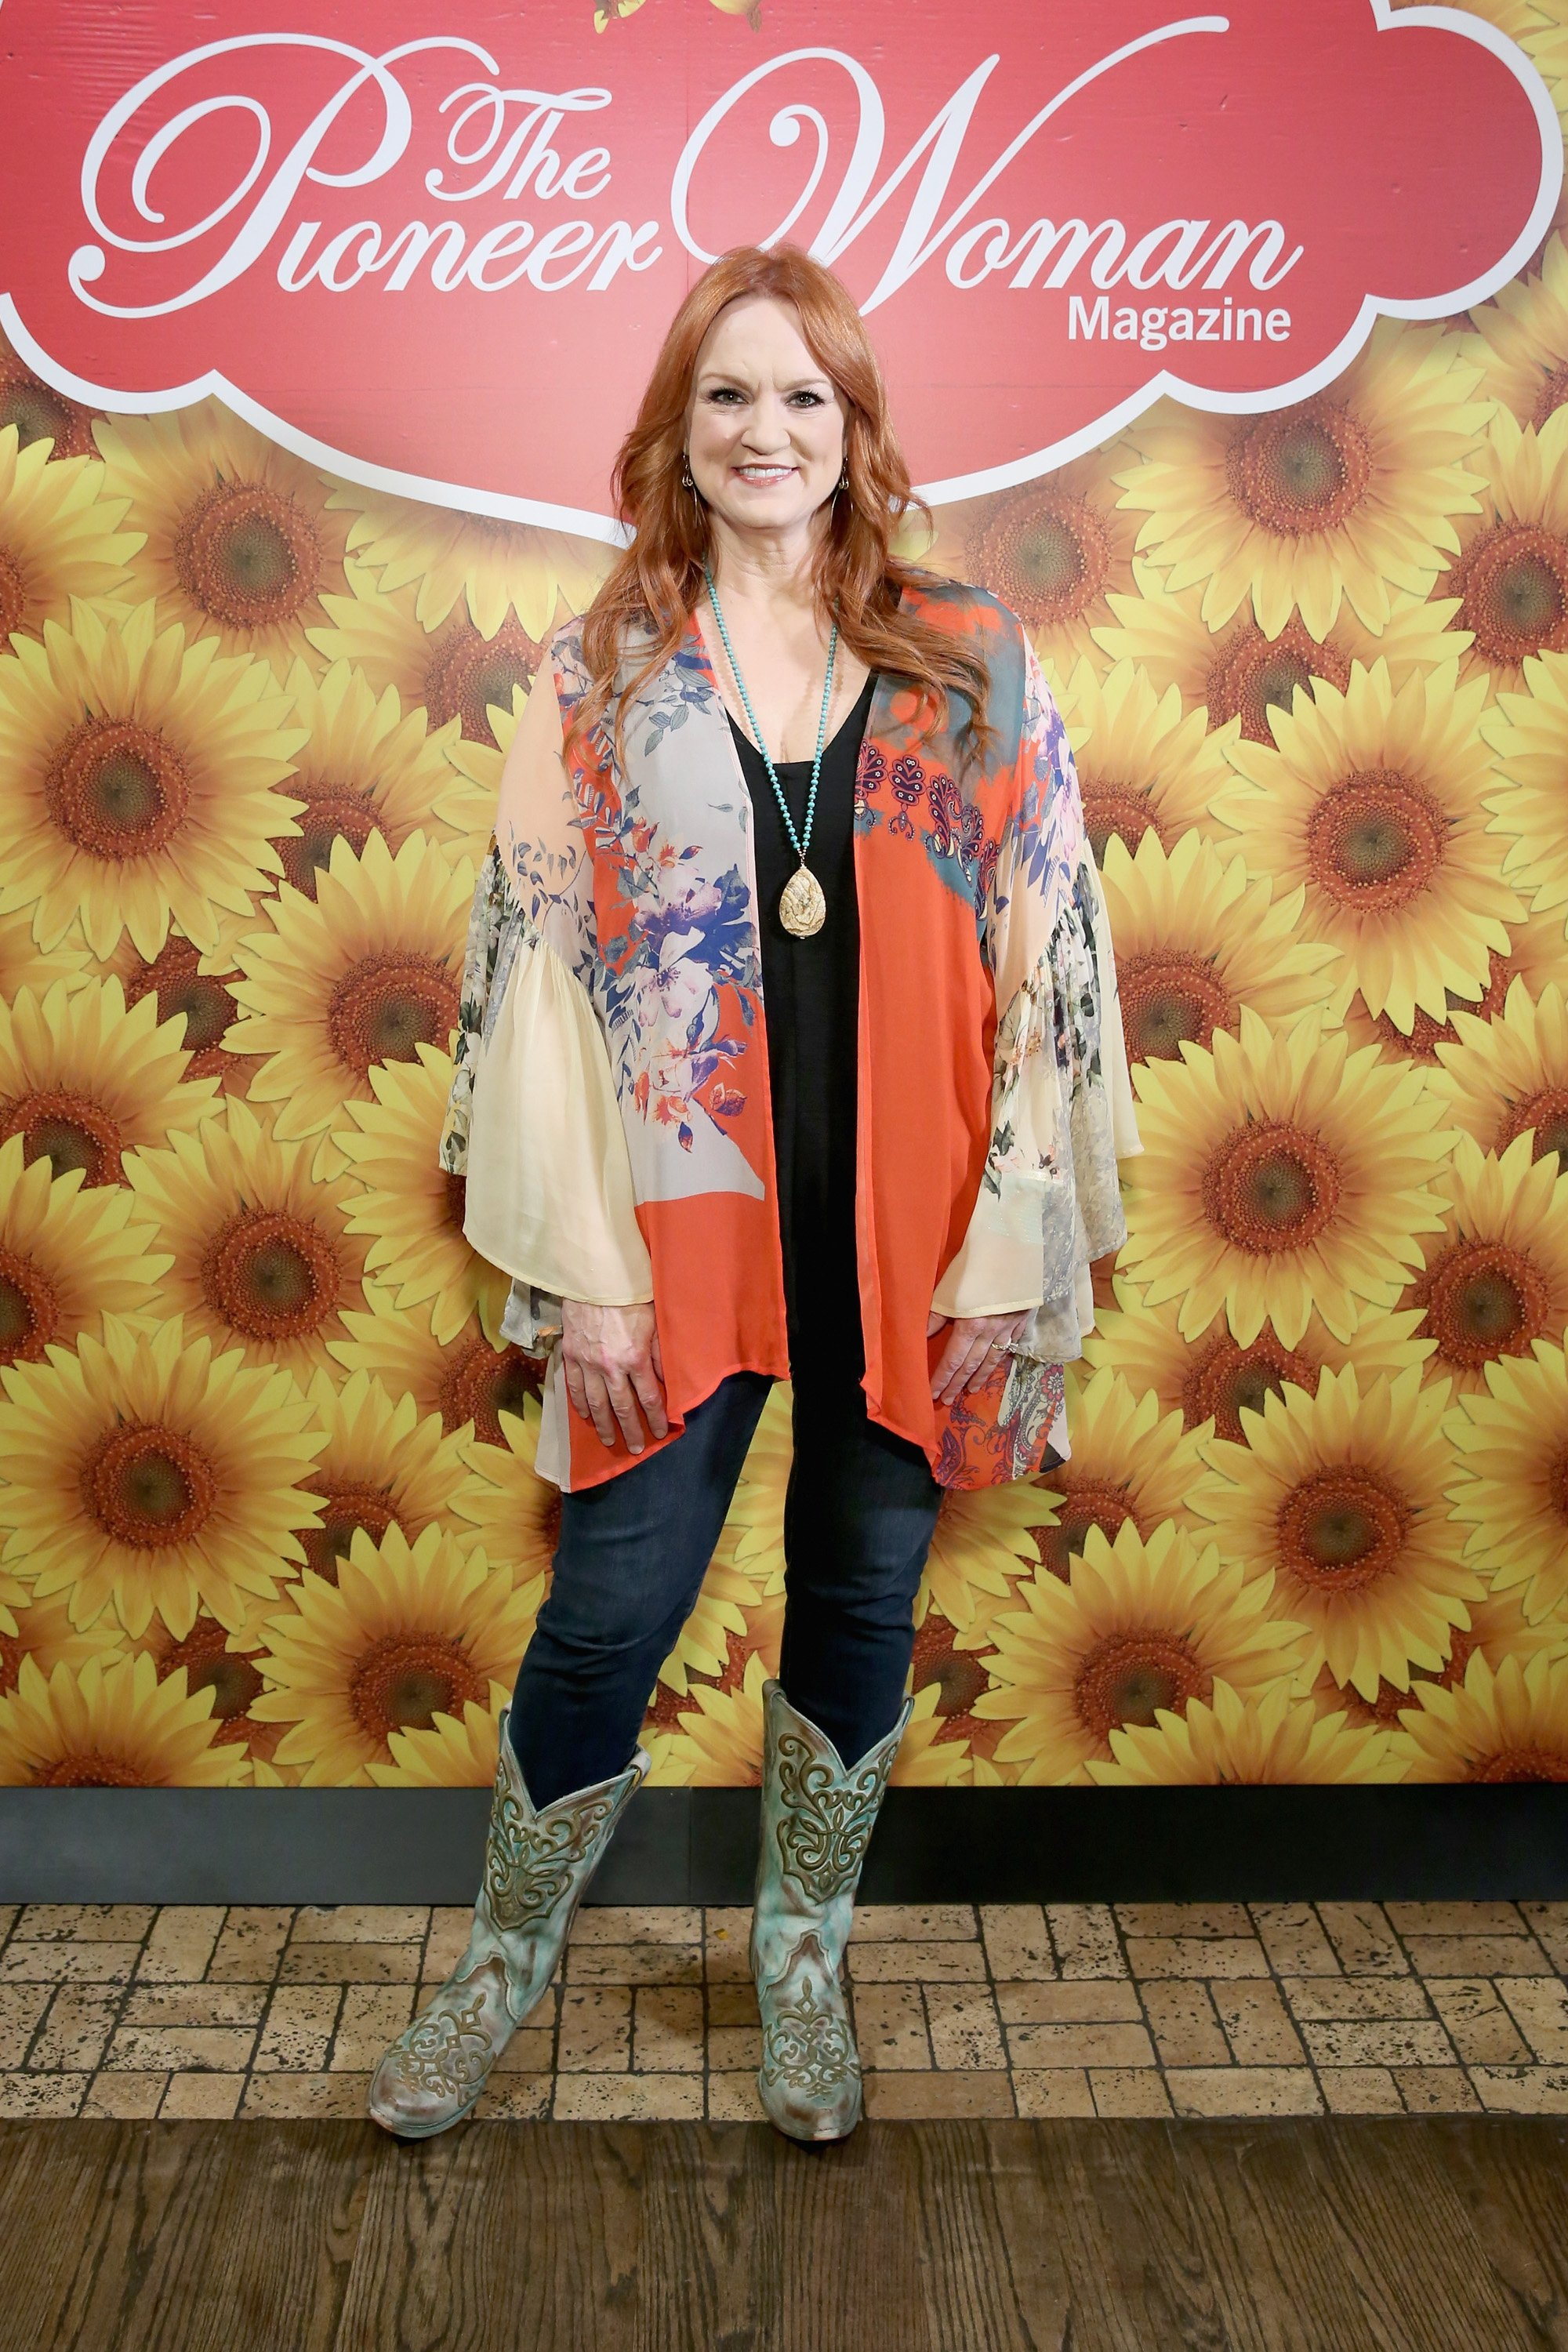 Ree Drummond attends The Pioneer Woman Magazine Celebration on June 6, 2017, in New York City.   Source: Getty Images.